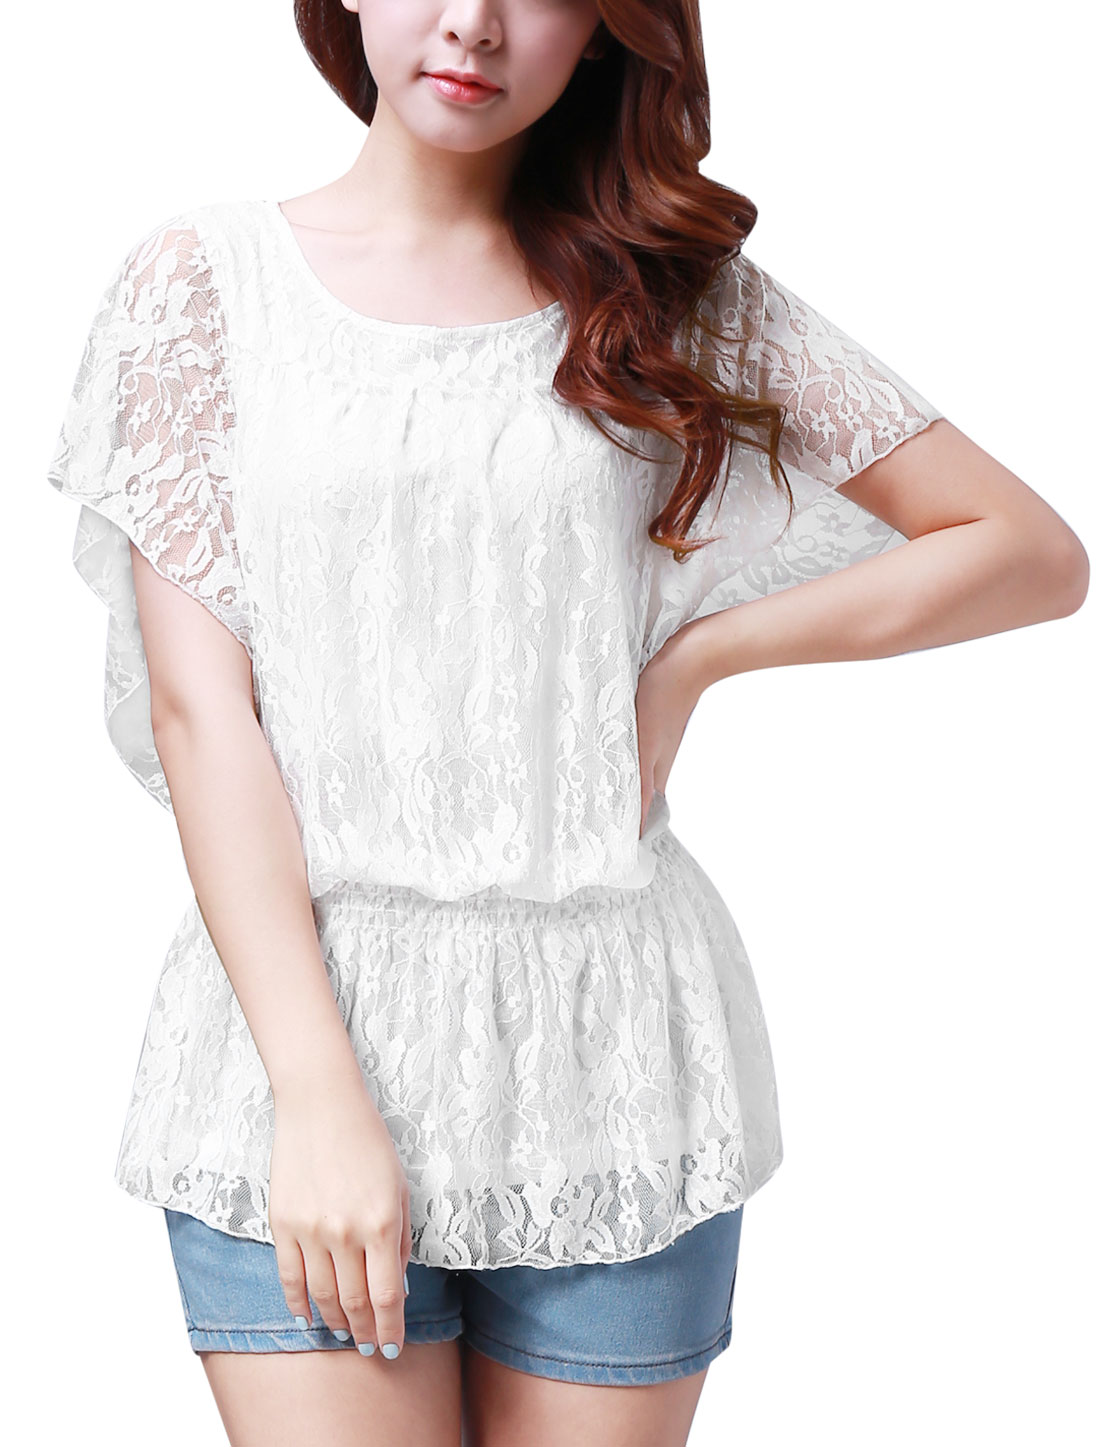 Woman Korea Style Scoop Neck Ruffled Sleeve All Over Lace White Top M